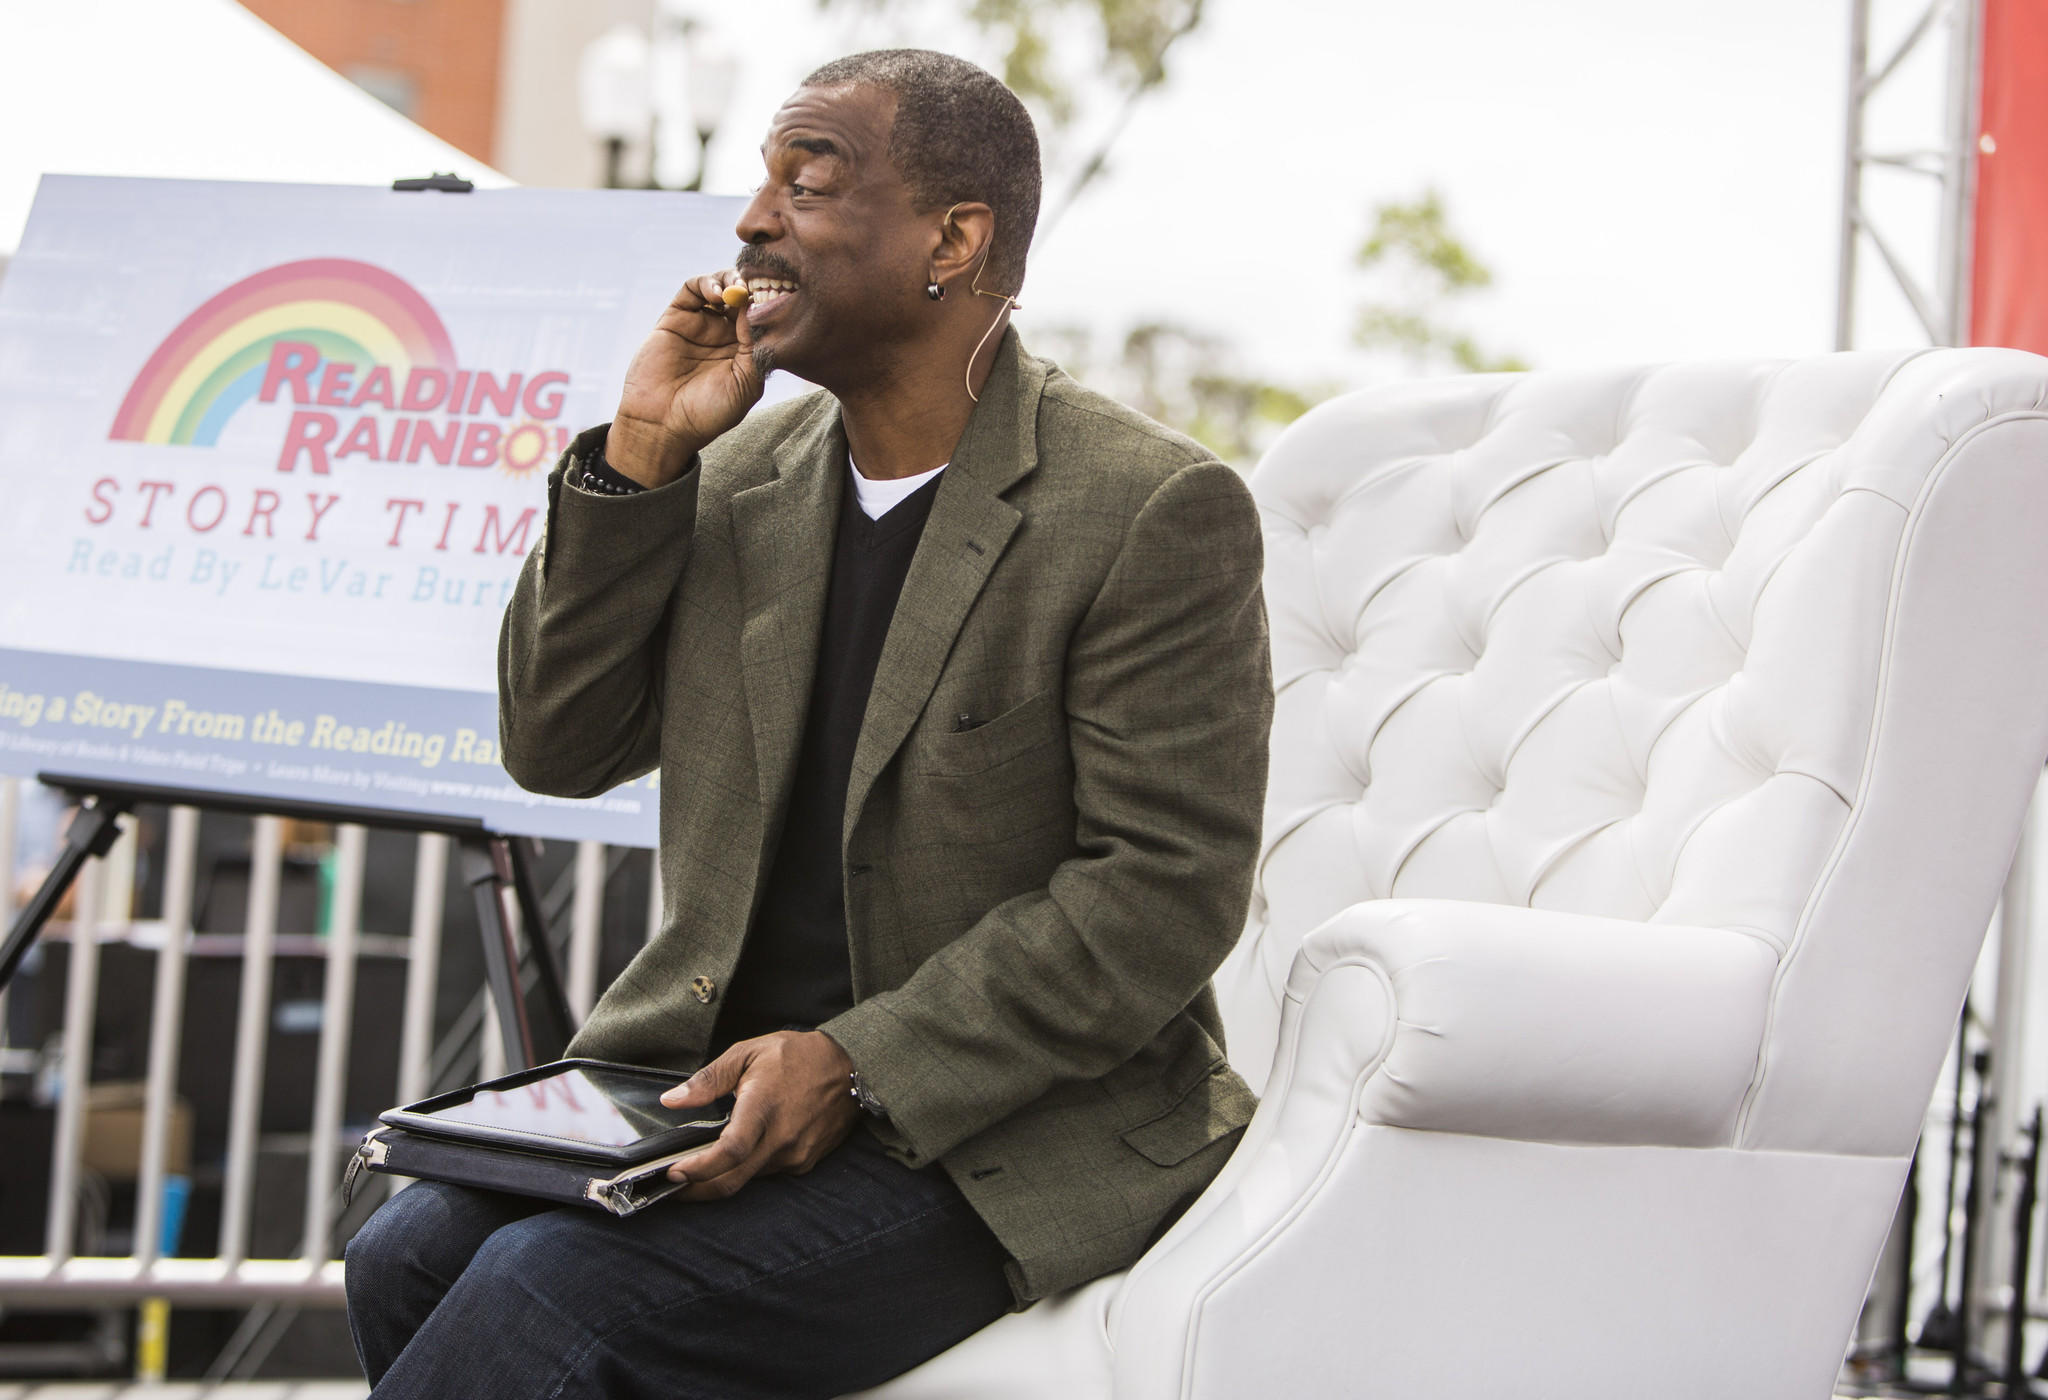 LeVar Burton does a Reading Rainbow Live session at the Los Angeles Times Festival of Books.